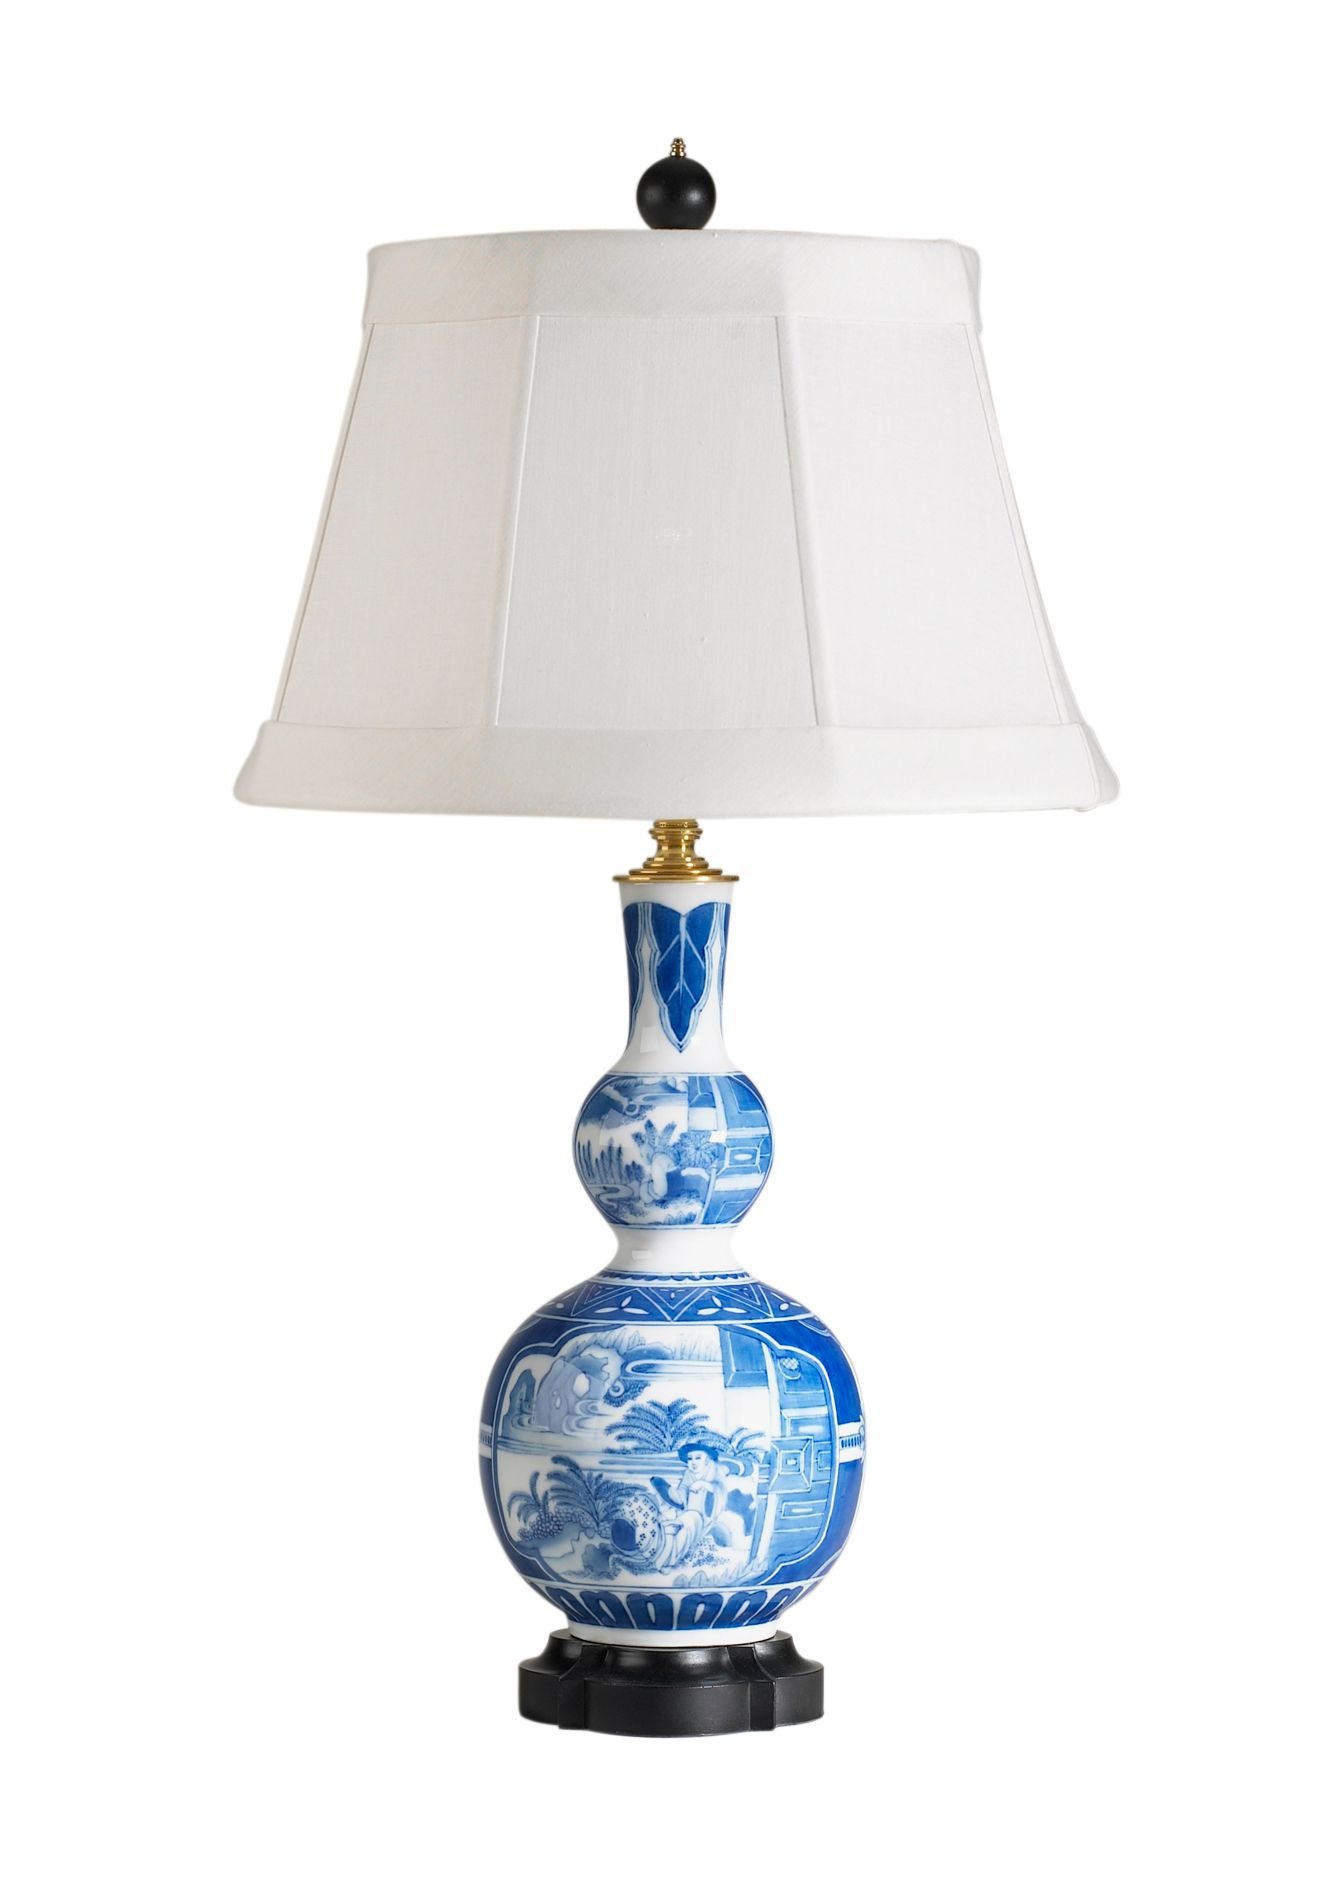 "This beautiful porcelain lamp has hand painted scenes and measures 27""H. The…"